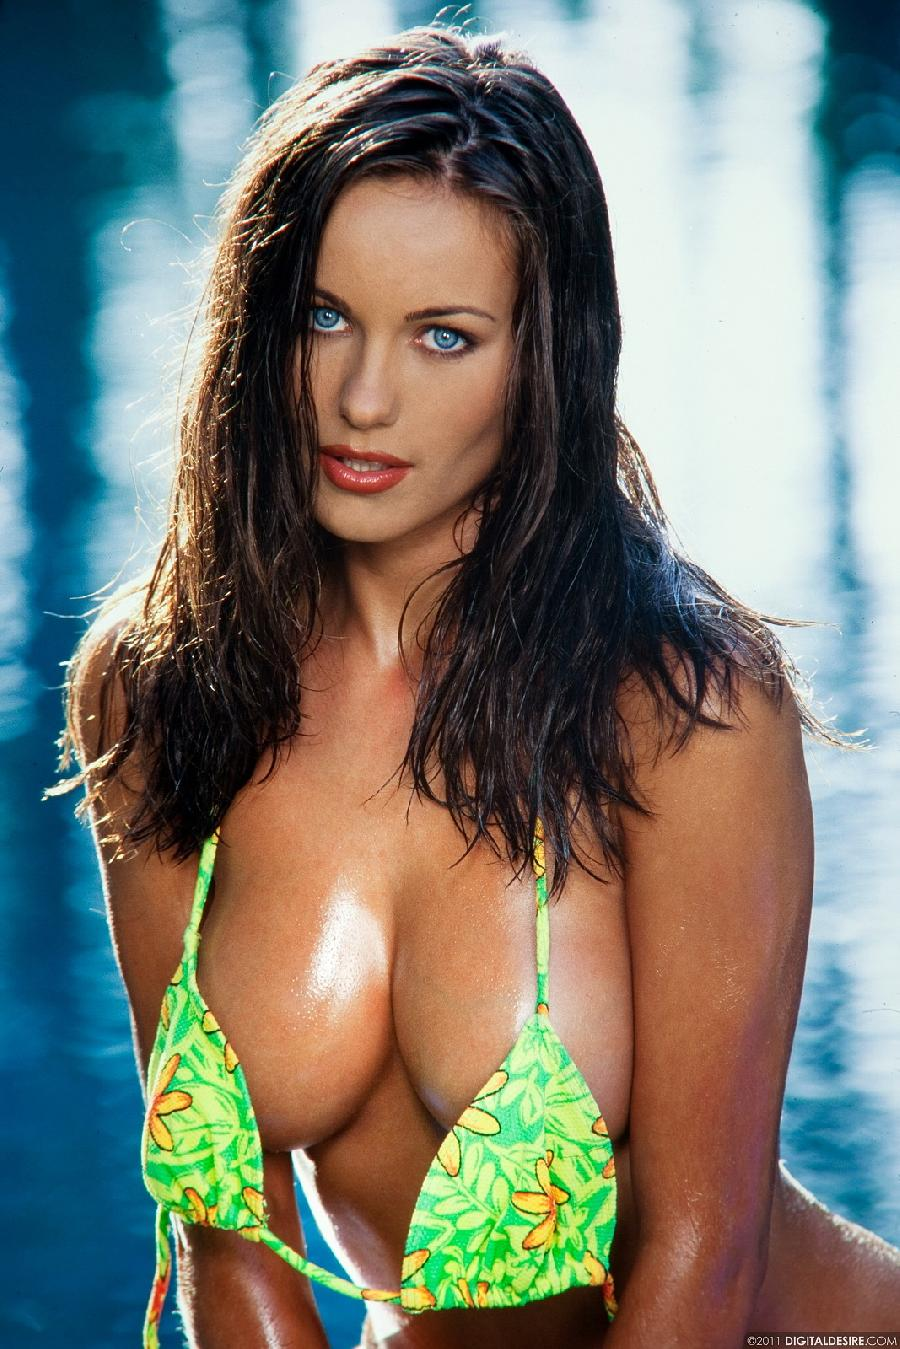 Kyla Cole bikini tease outdoors